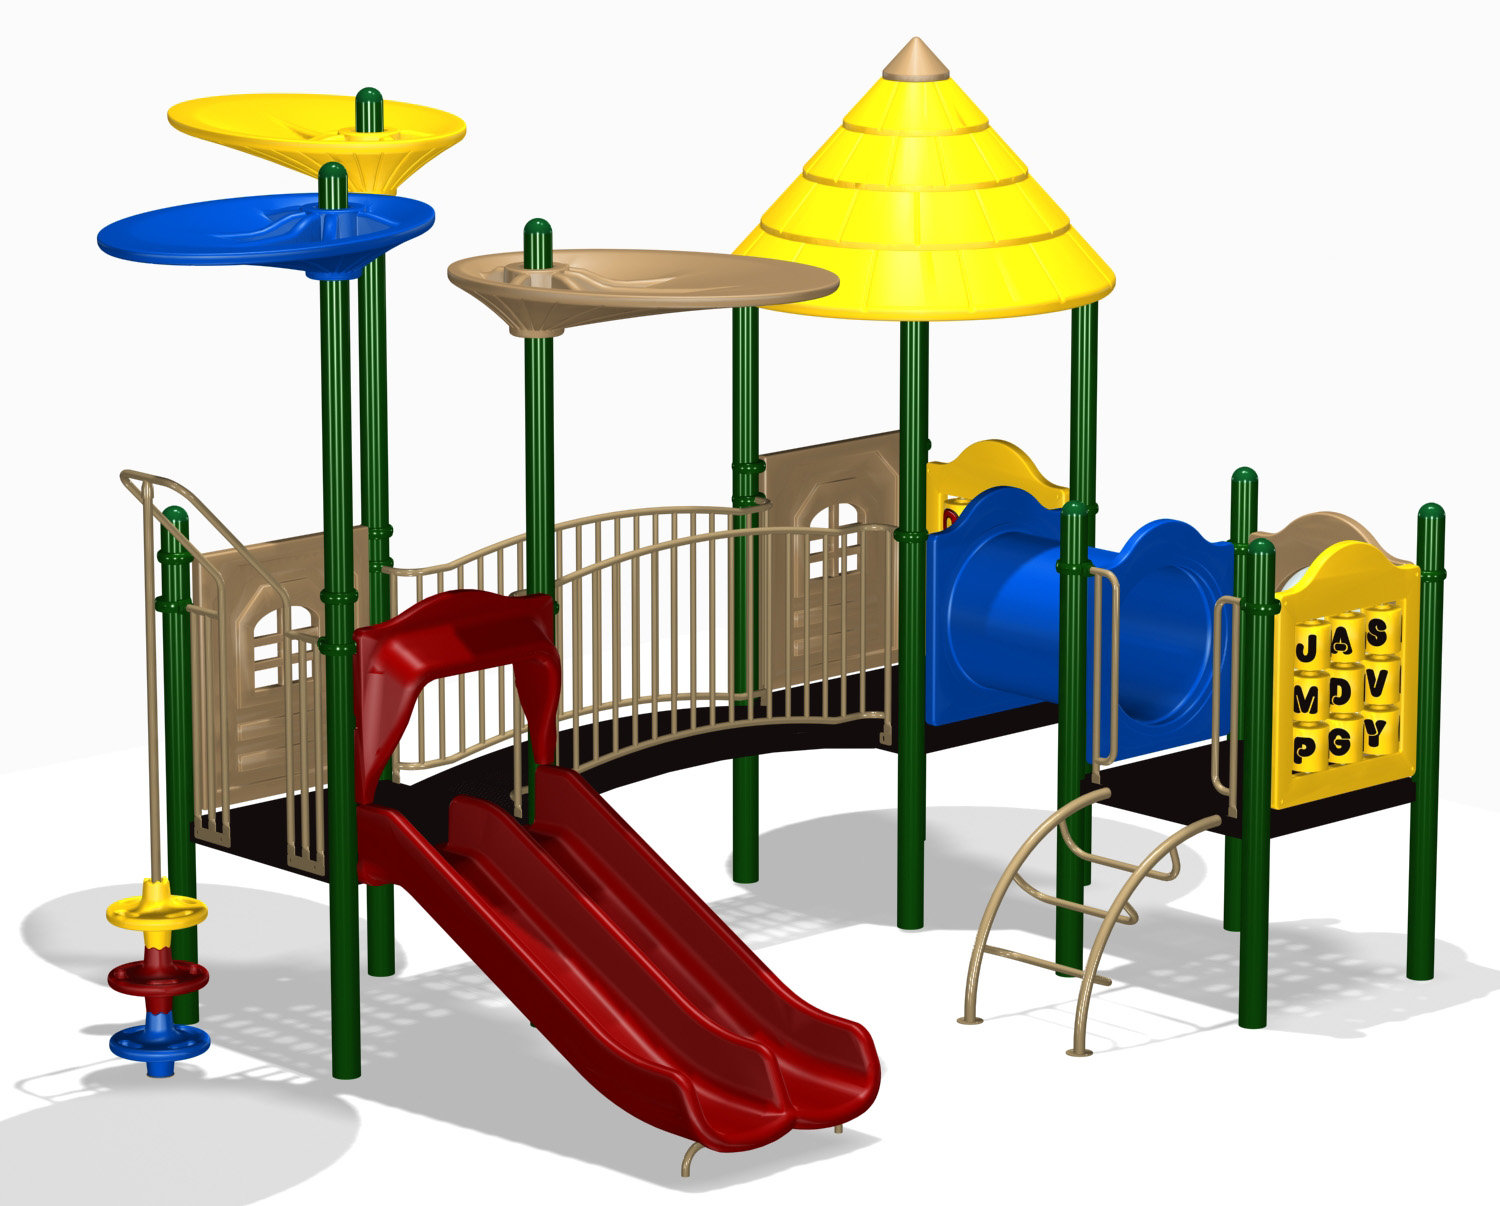 Library clipart school playground Clipart clipart Playground cliparts Cliparting